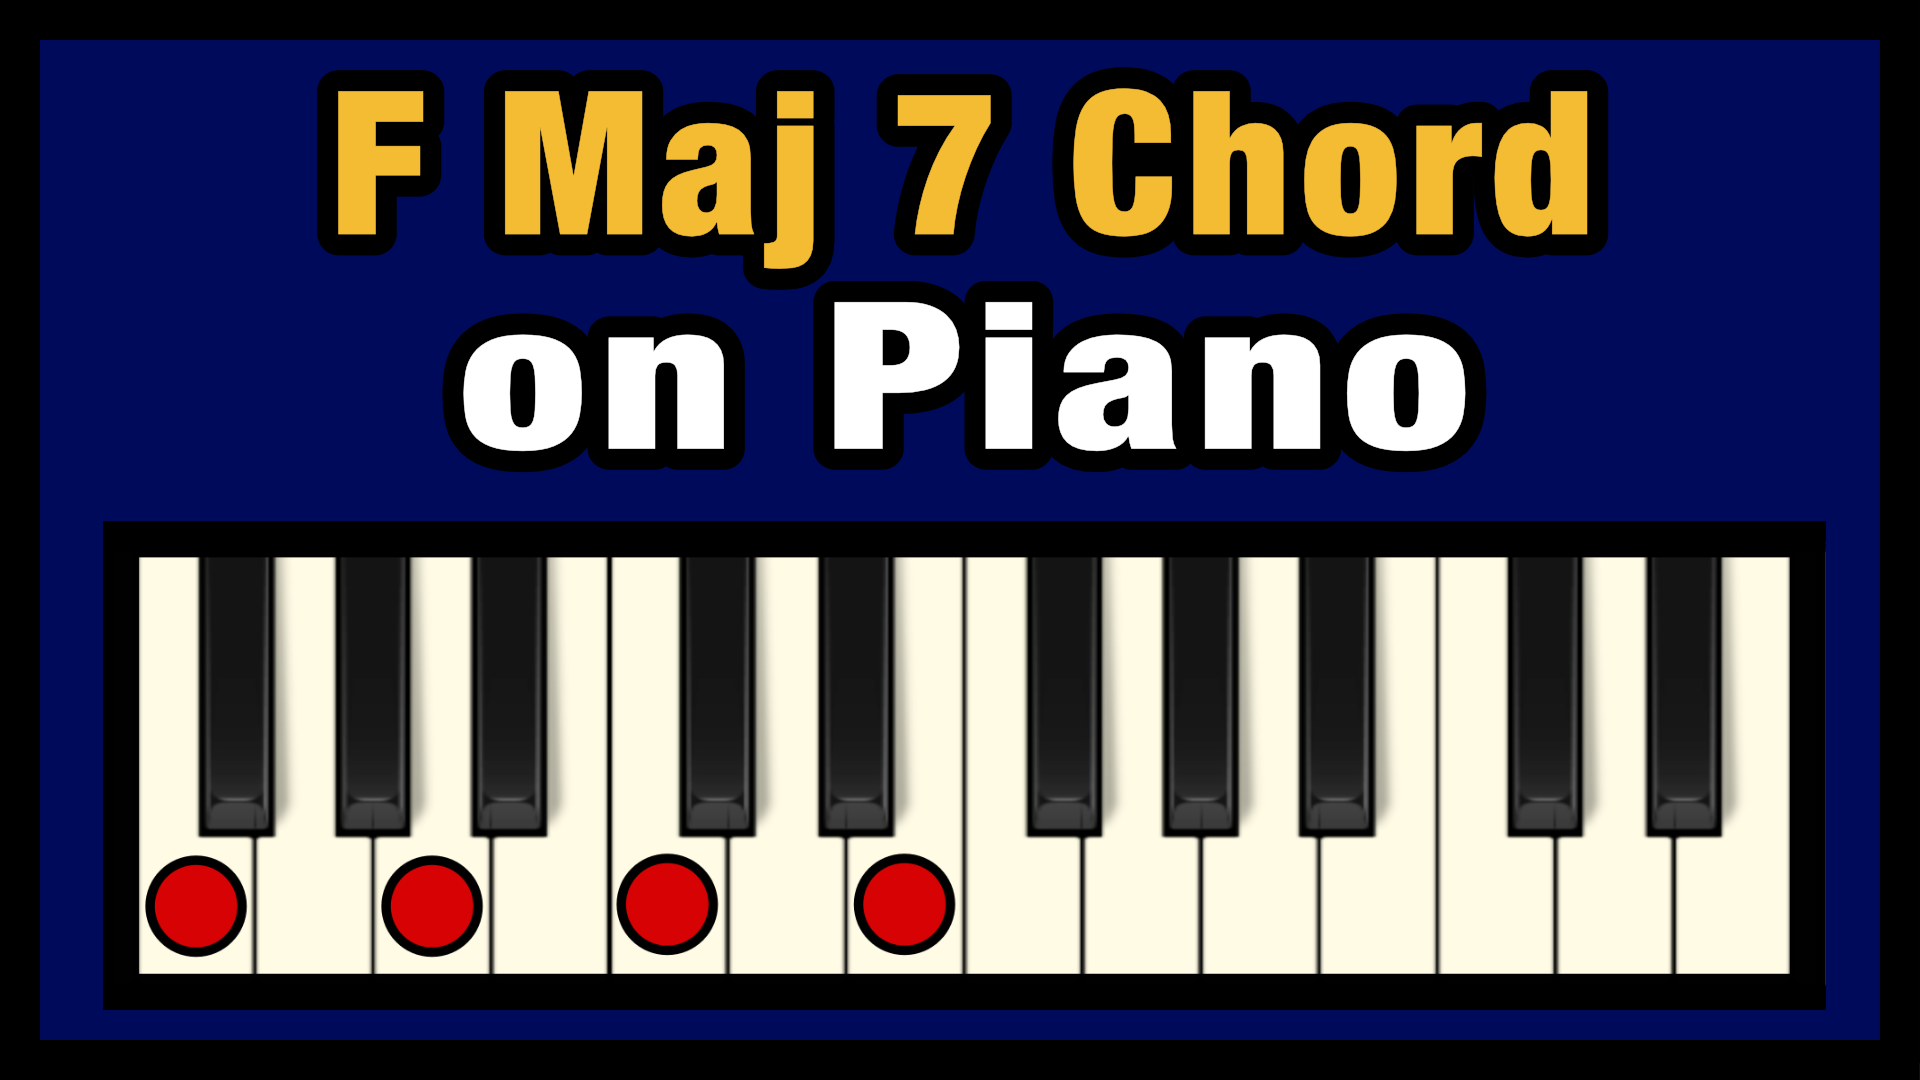 F Maj 15 Chord on Piano Free Chart   Professional Composers